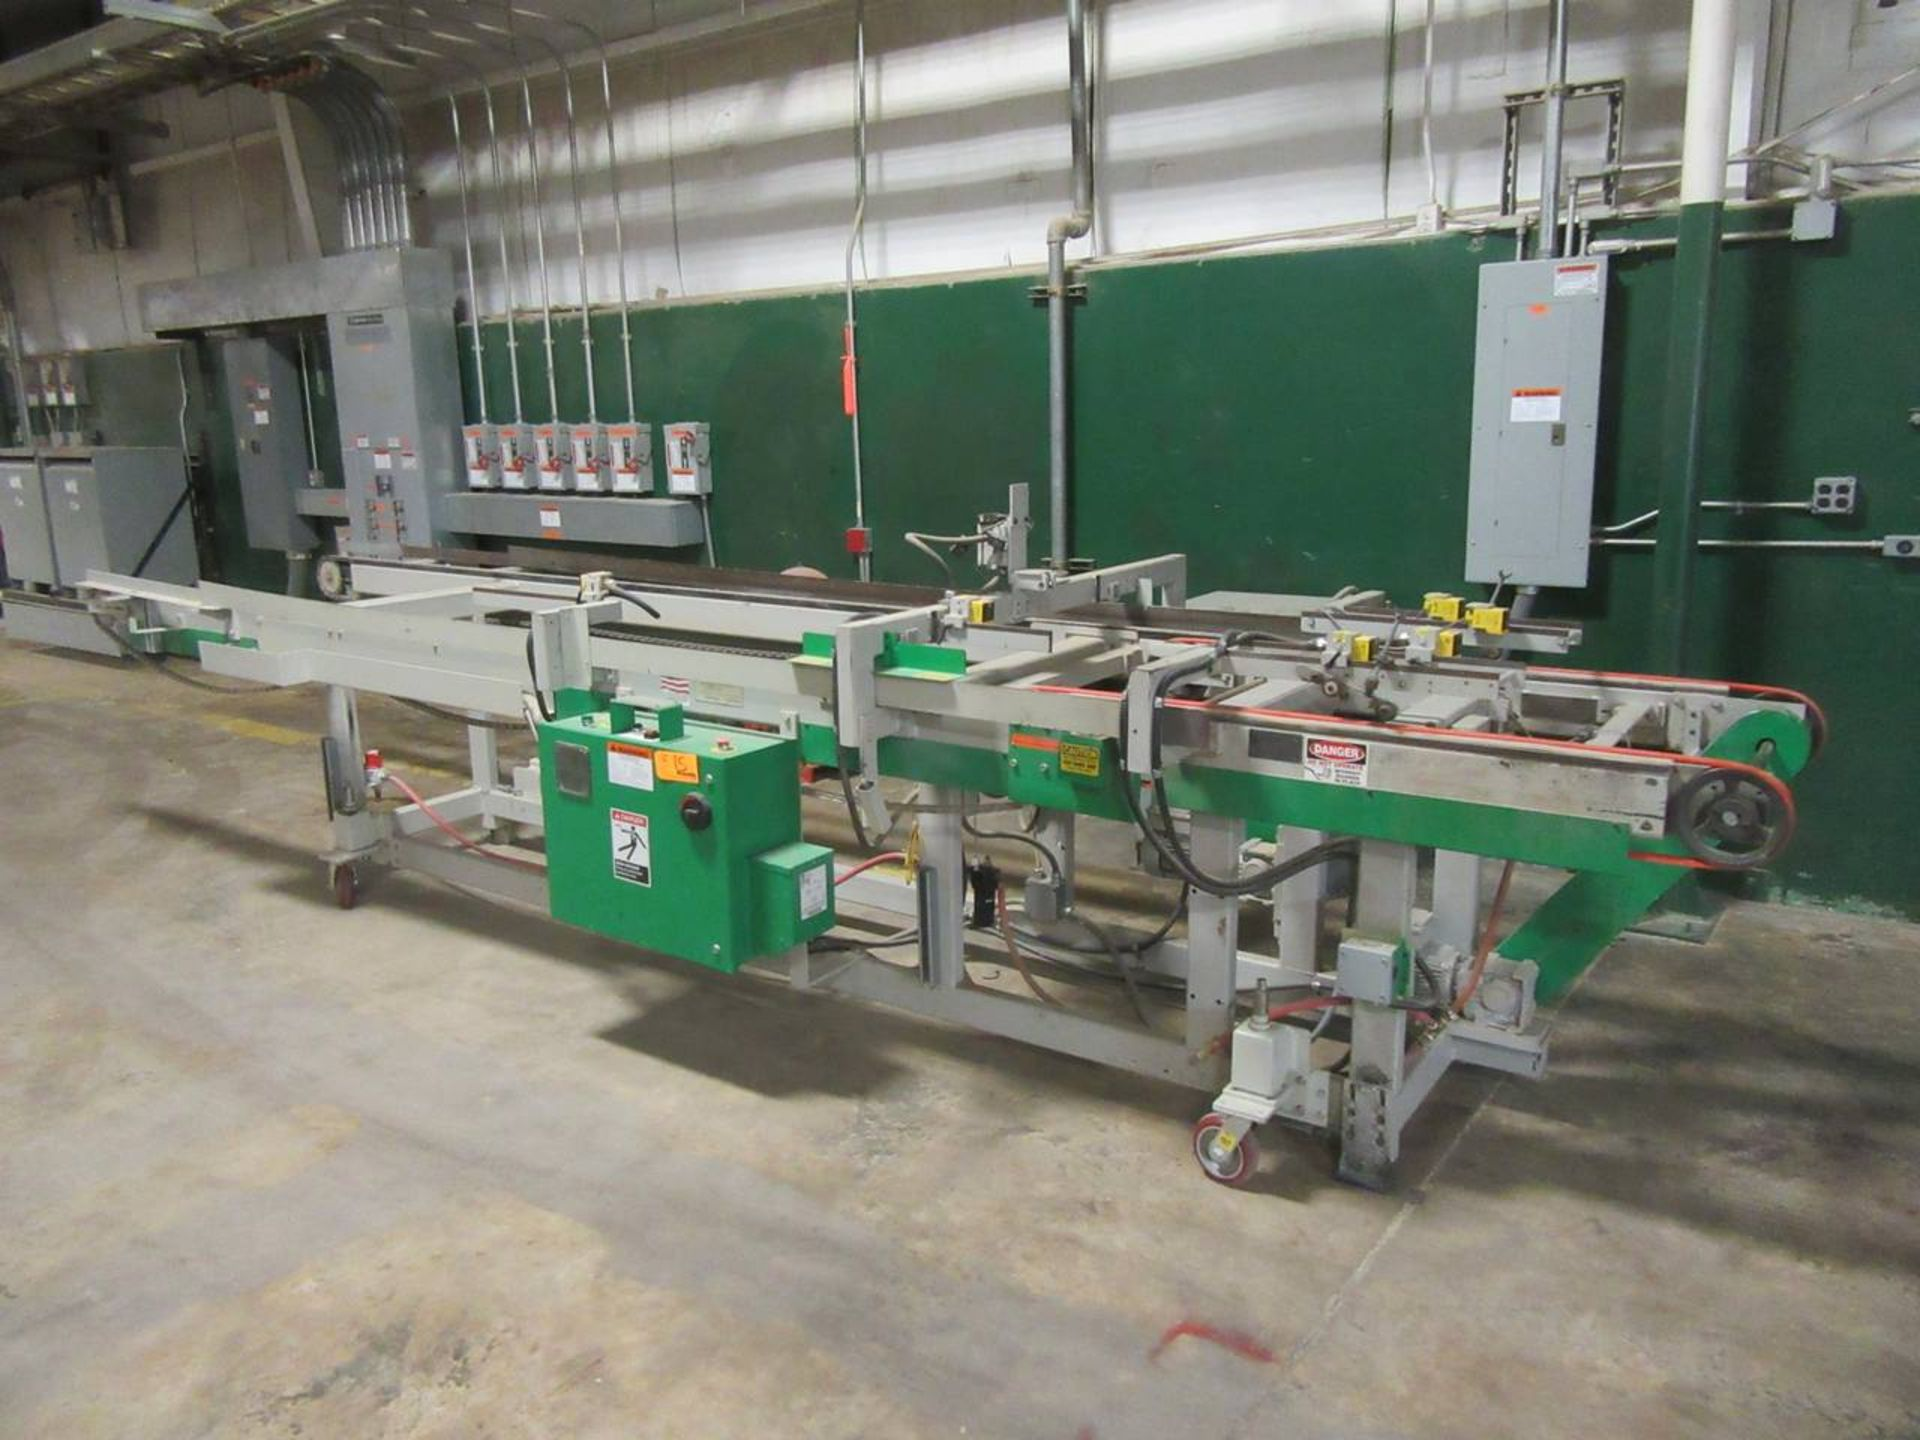 Lot 15 - Fletcher FM-ITO Conveyor